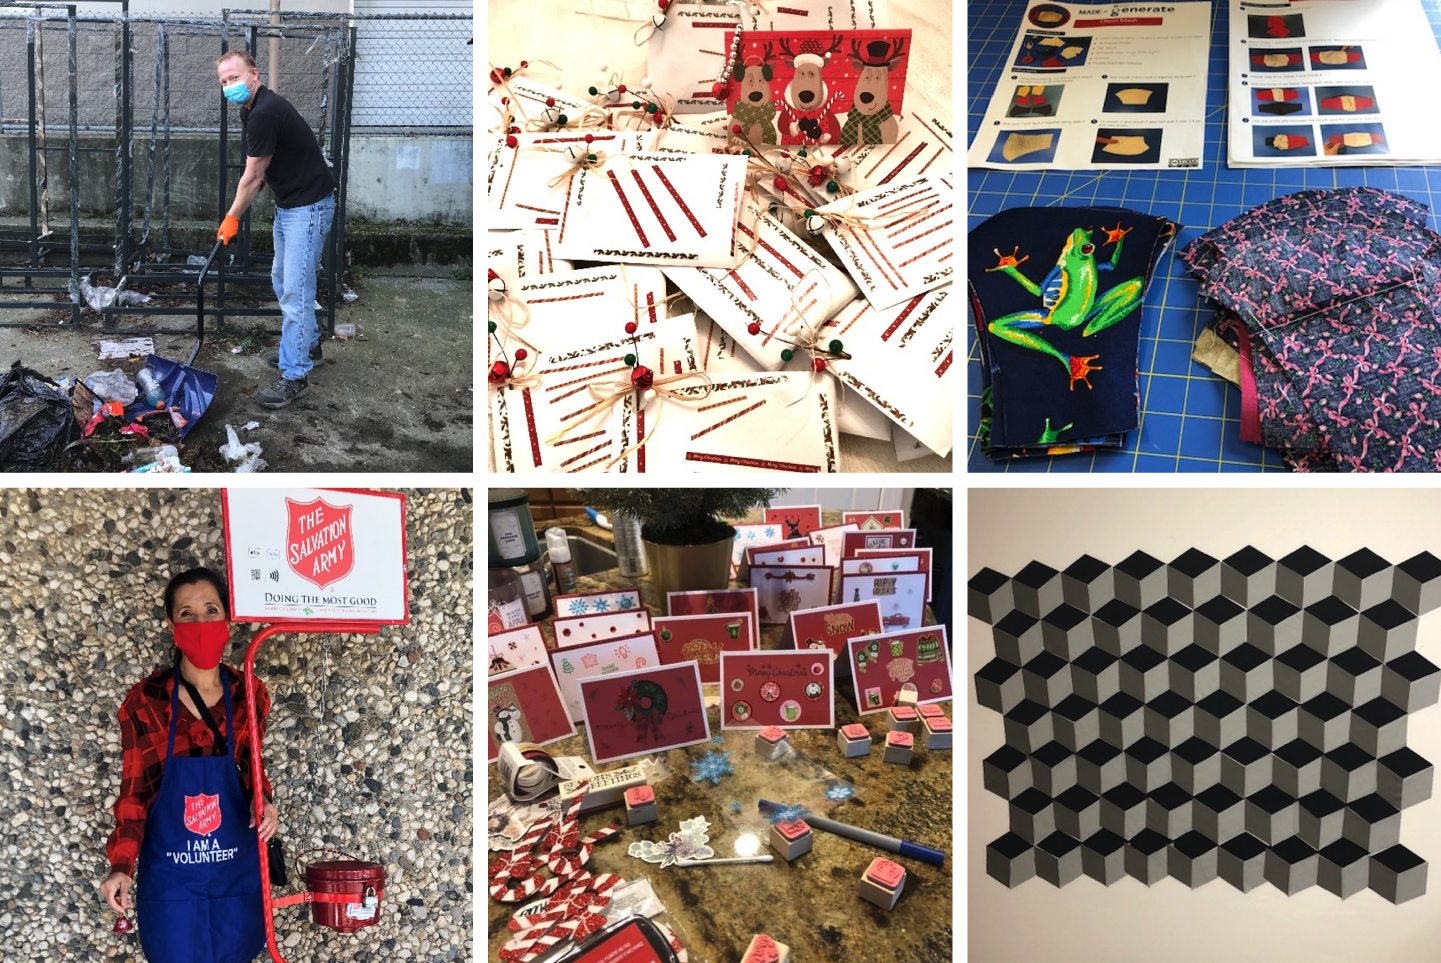 SC volunteering projects collage